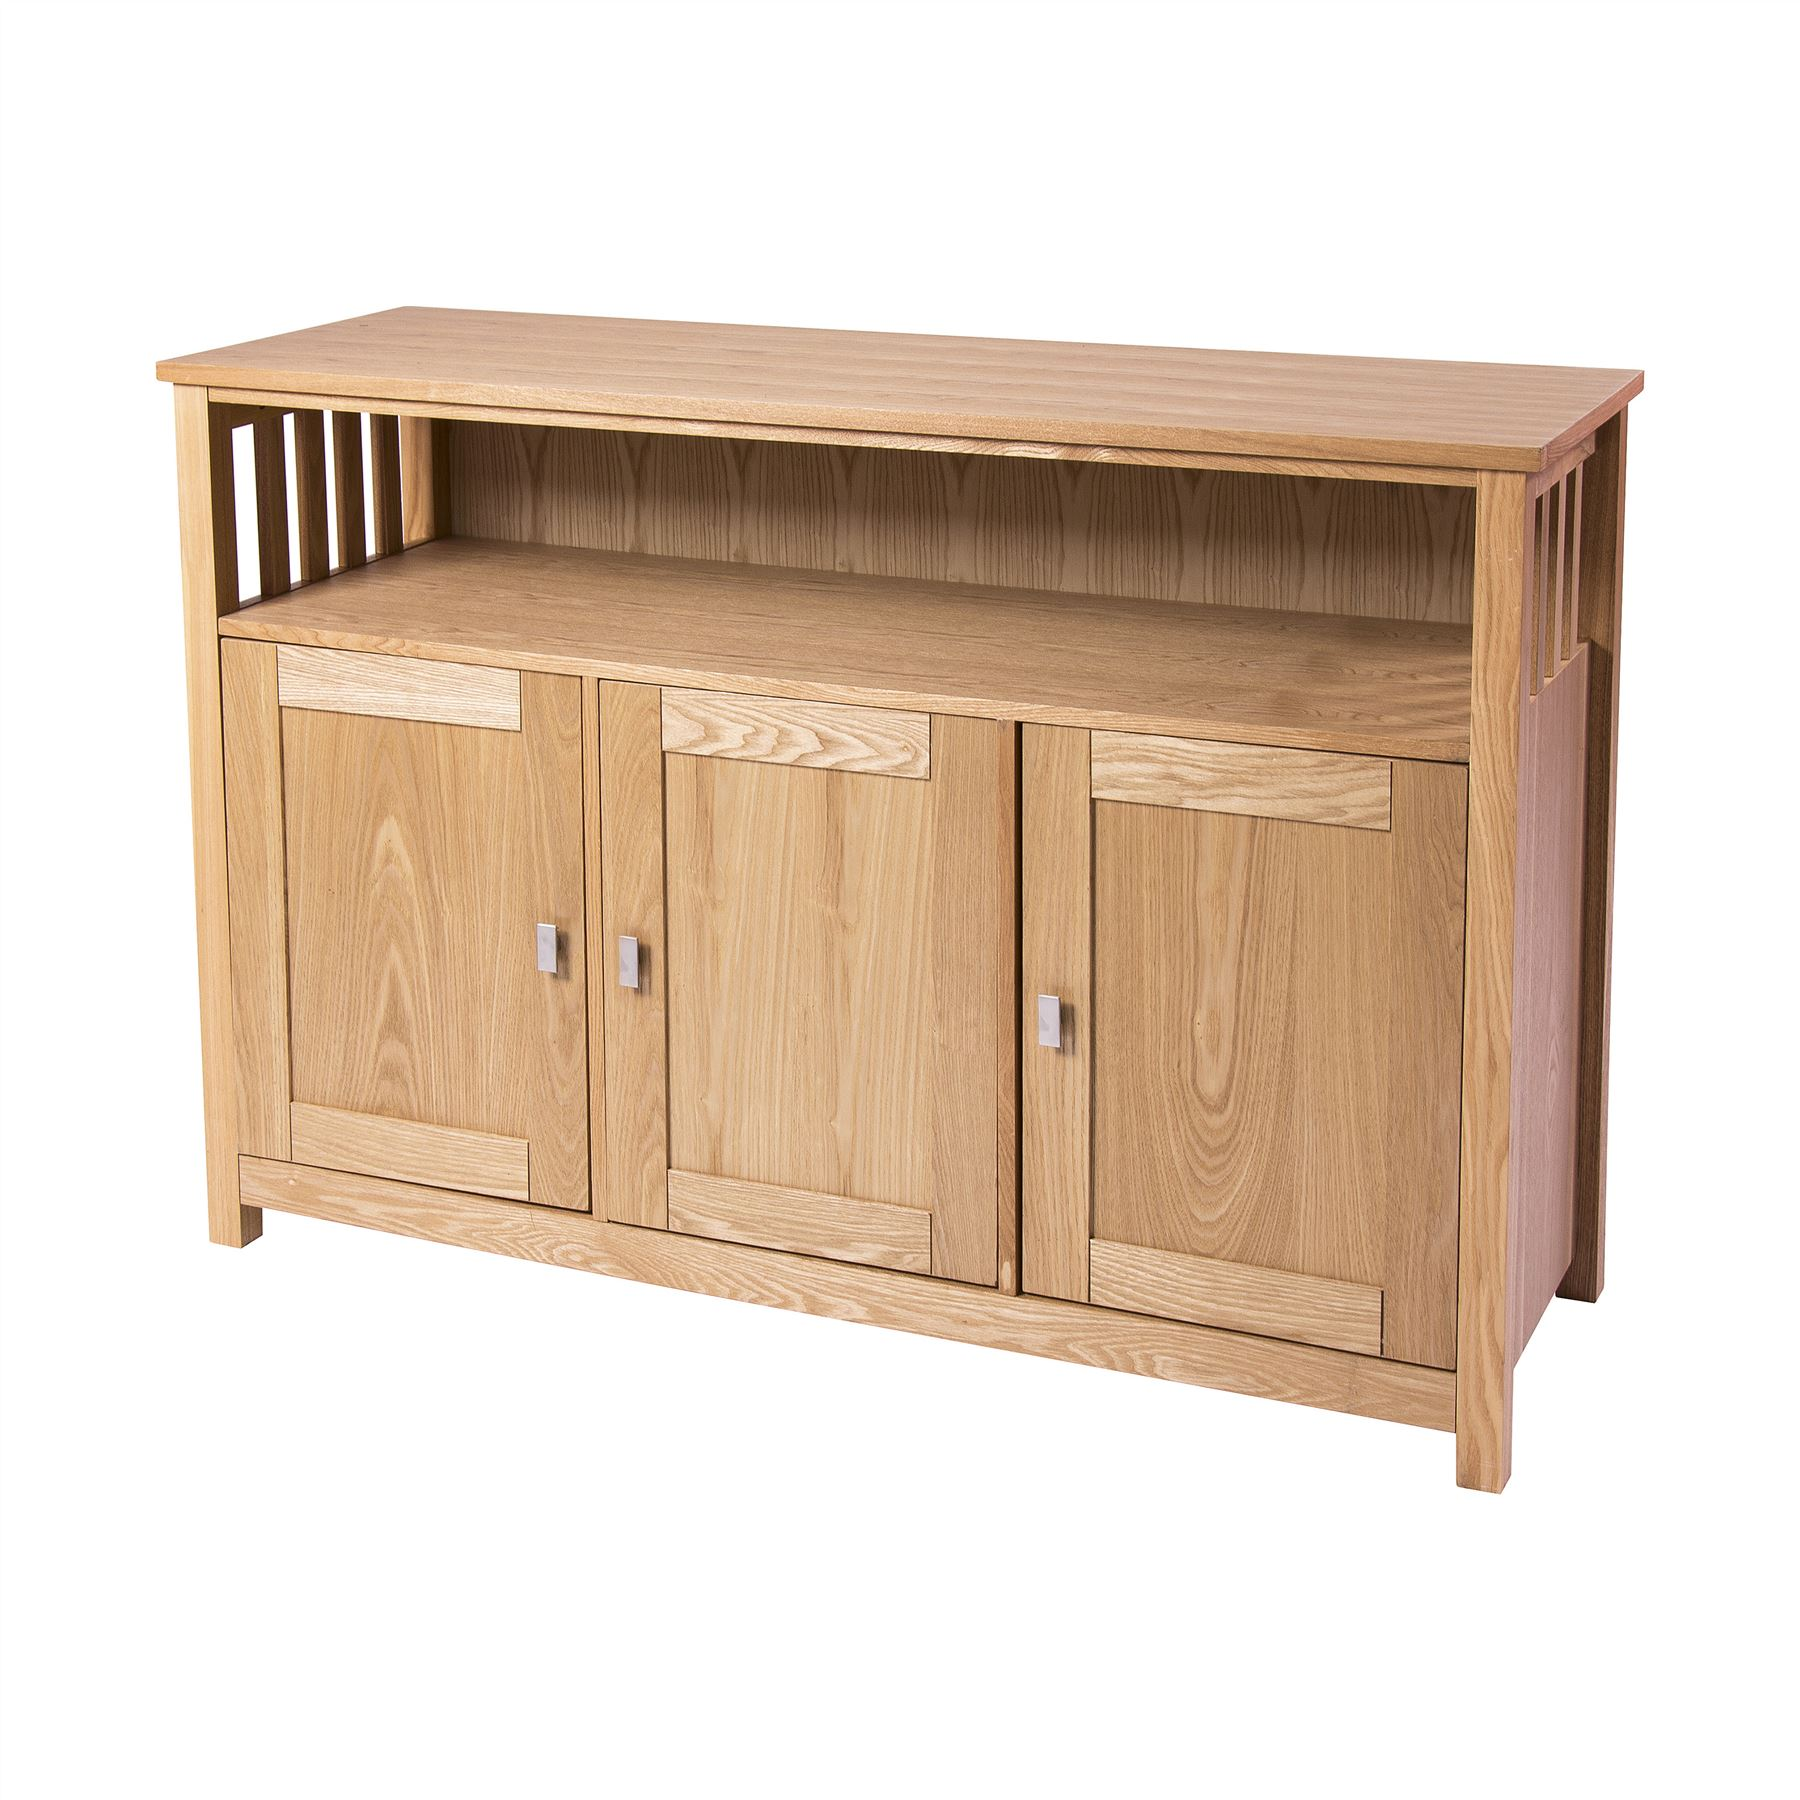 ROYAL OAK LIVING ROOM BOOKCASE TV UNIT STAND COFFEE LAMP NEST TABLE SIDEBOARD -> Oak Tv Sideboard Unit